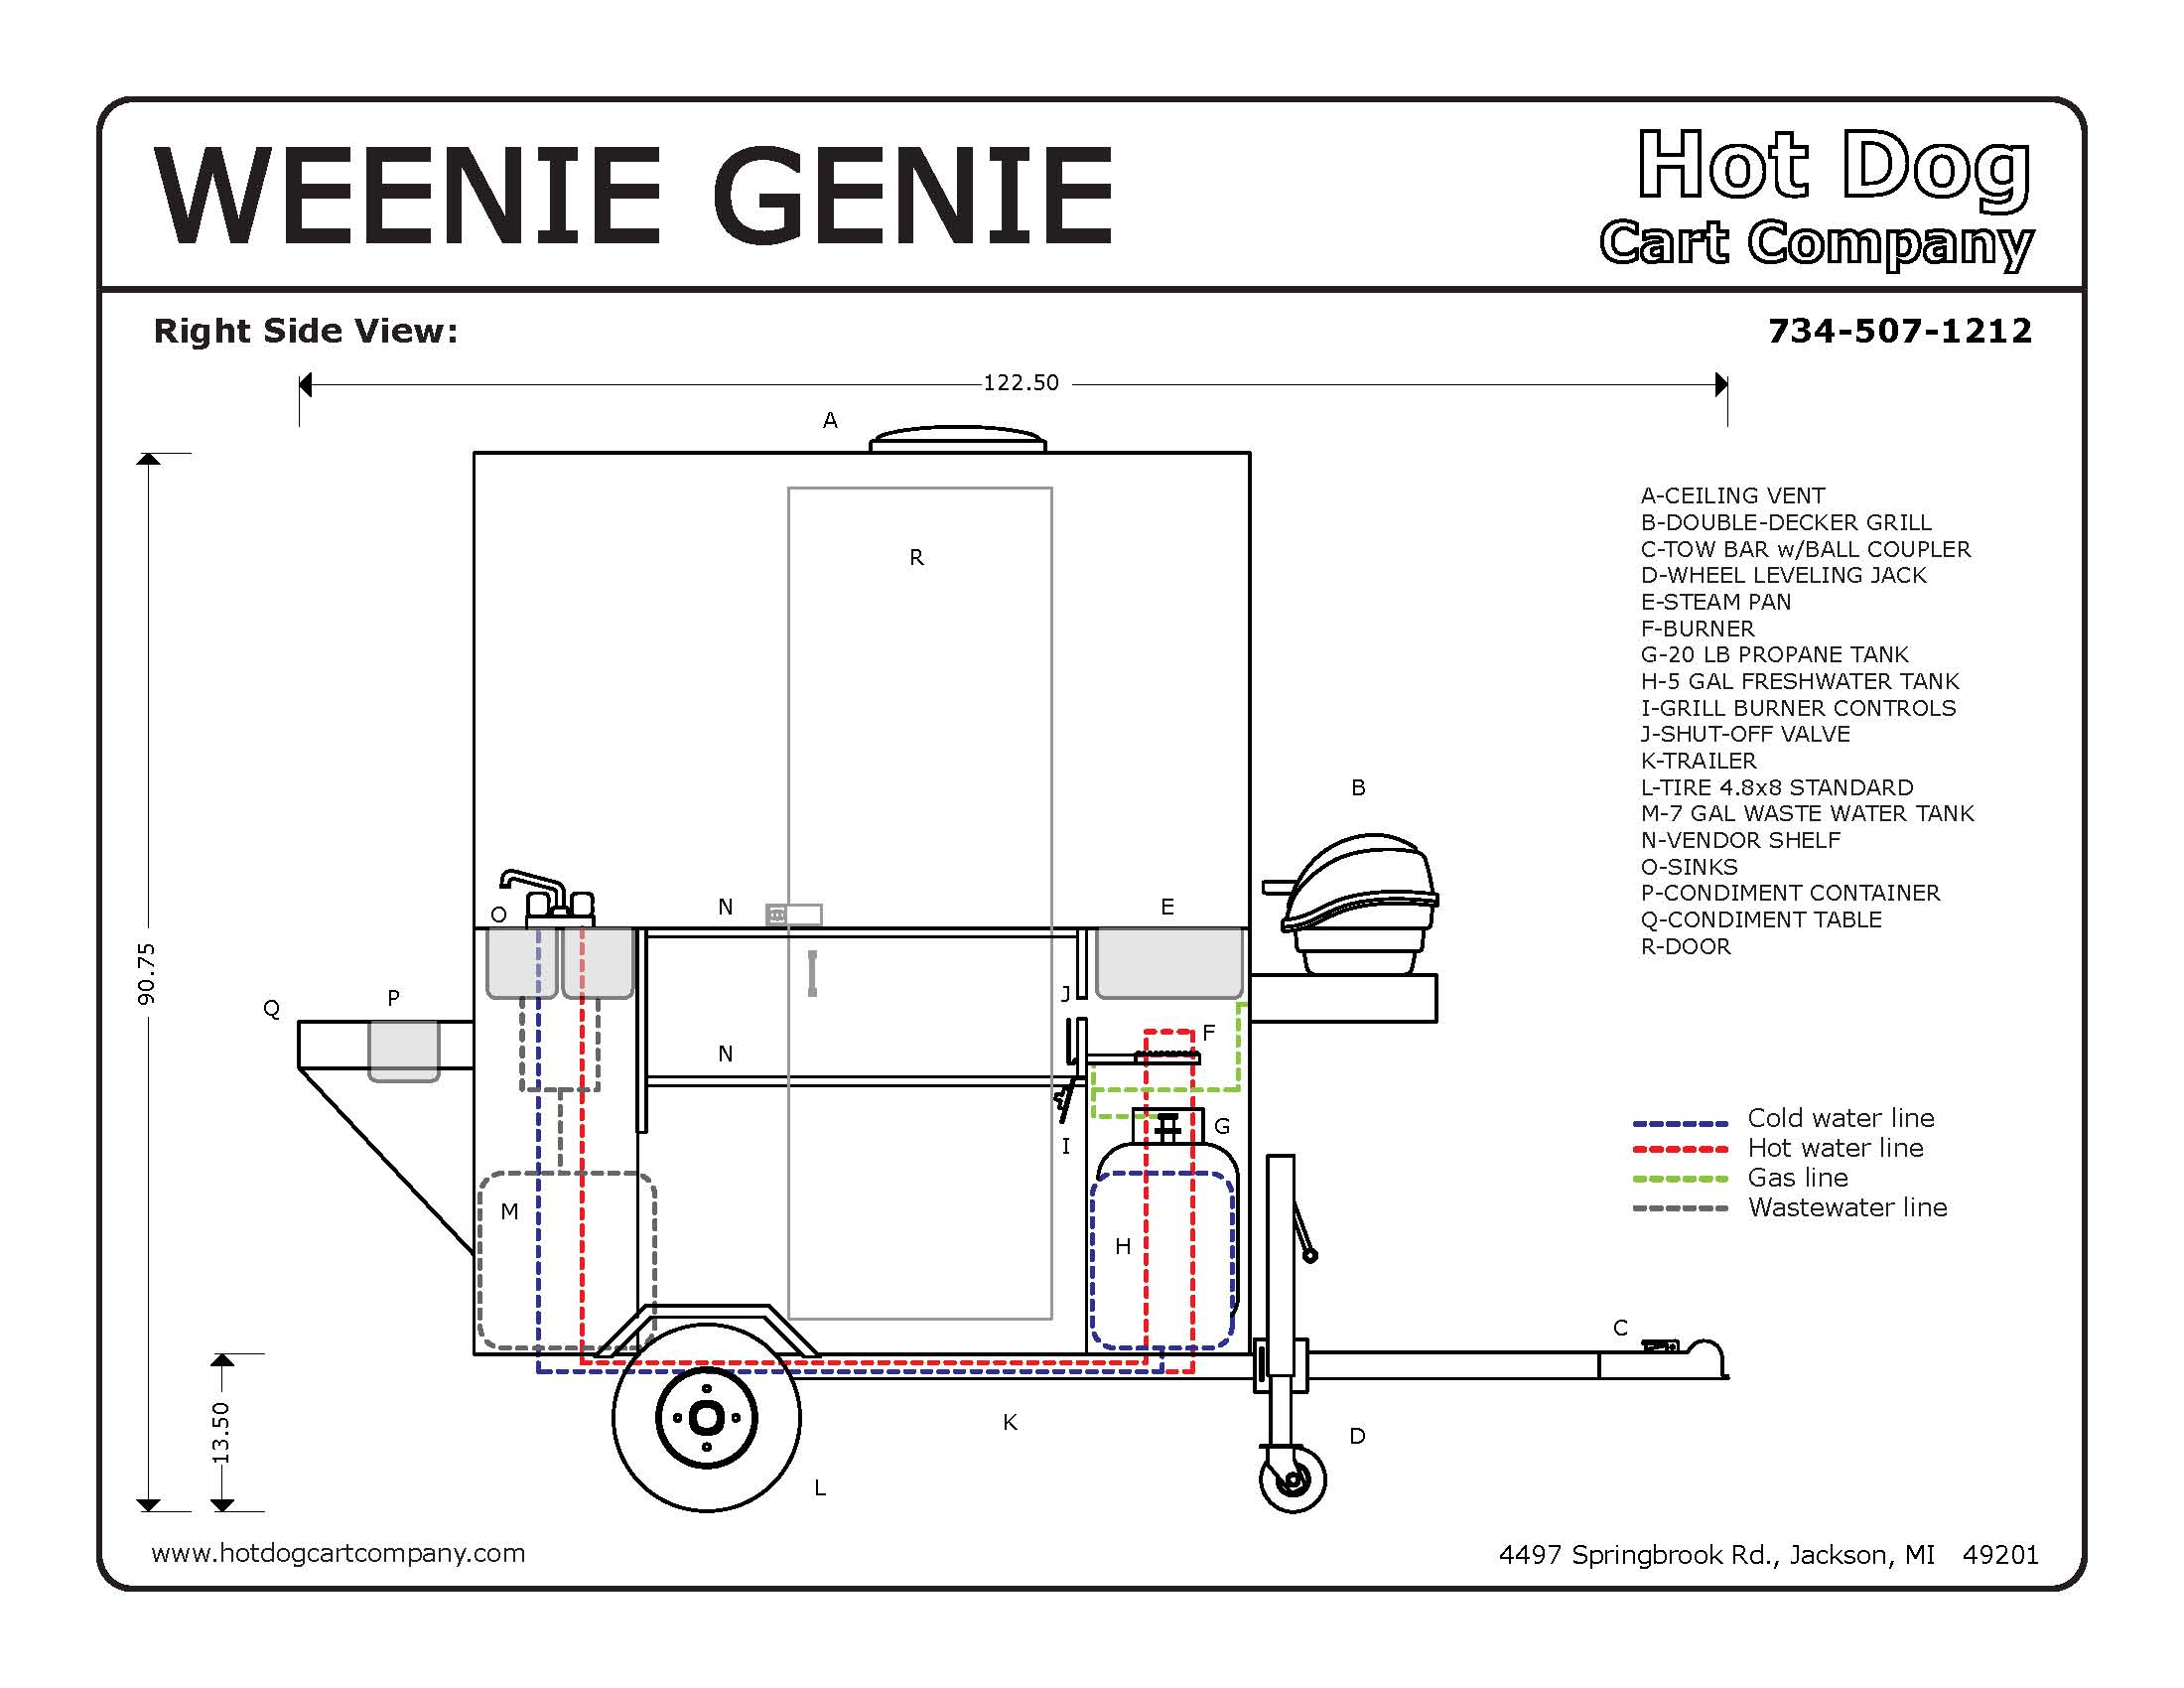 Weenie Genie Hot Dog Cart Enclosed | Condiment Table | 4 ... on jackson king v schematic, guitar string diagram, jackson performer wiring, jackson electric guitar schematic, jackson flying v wiring, jca20h diagram, jackson 3-way switches, jackson guitar wiring schematics,